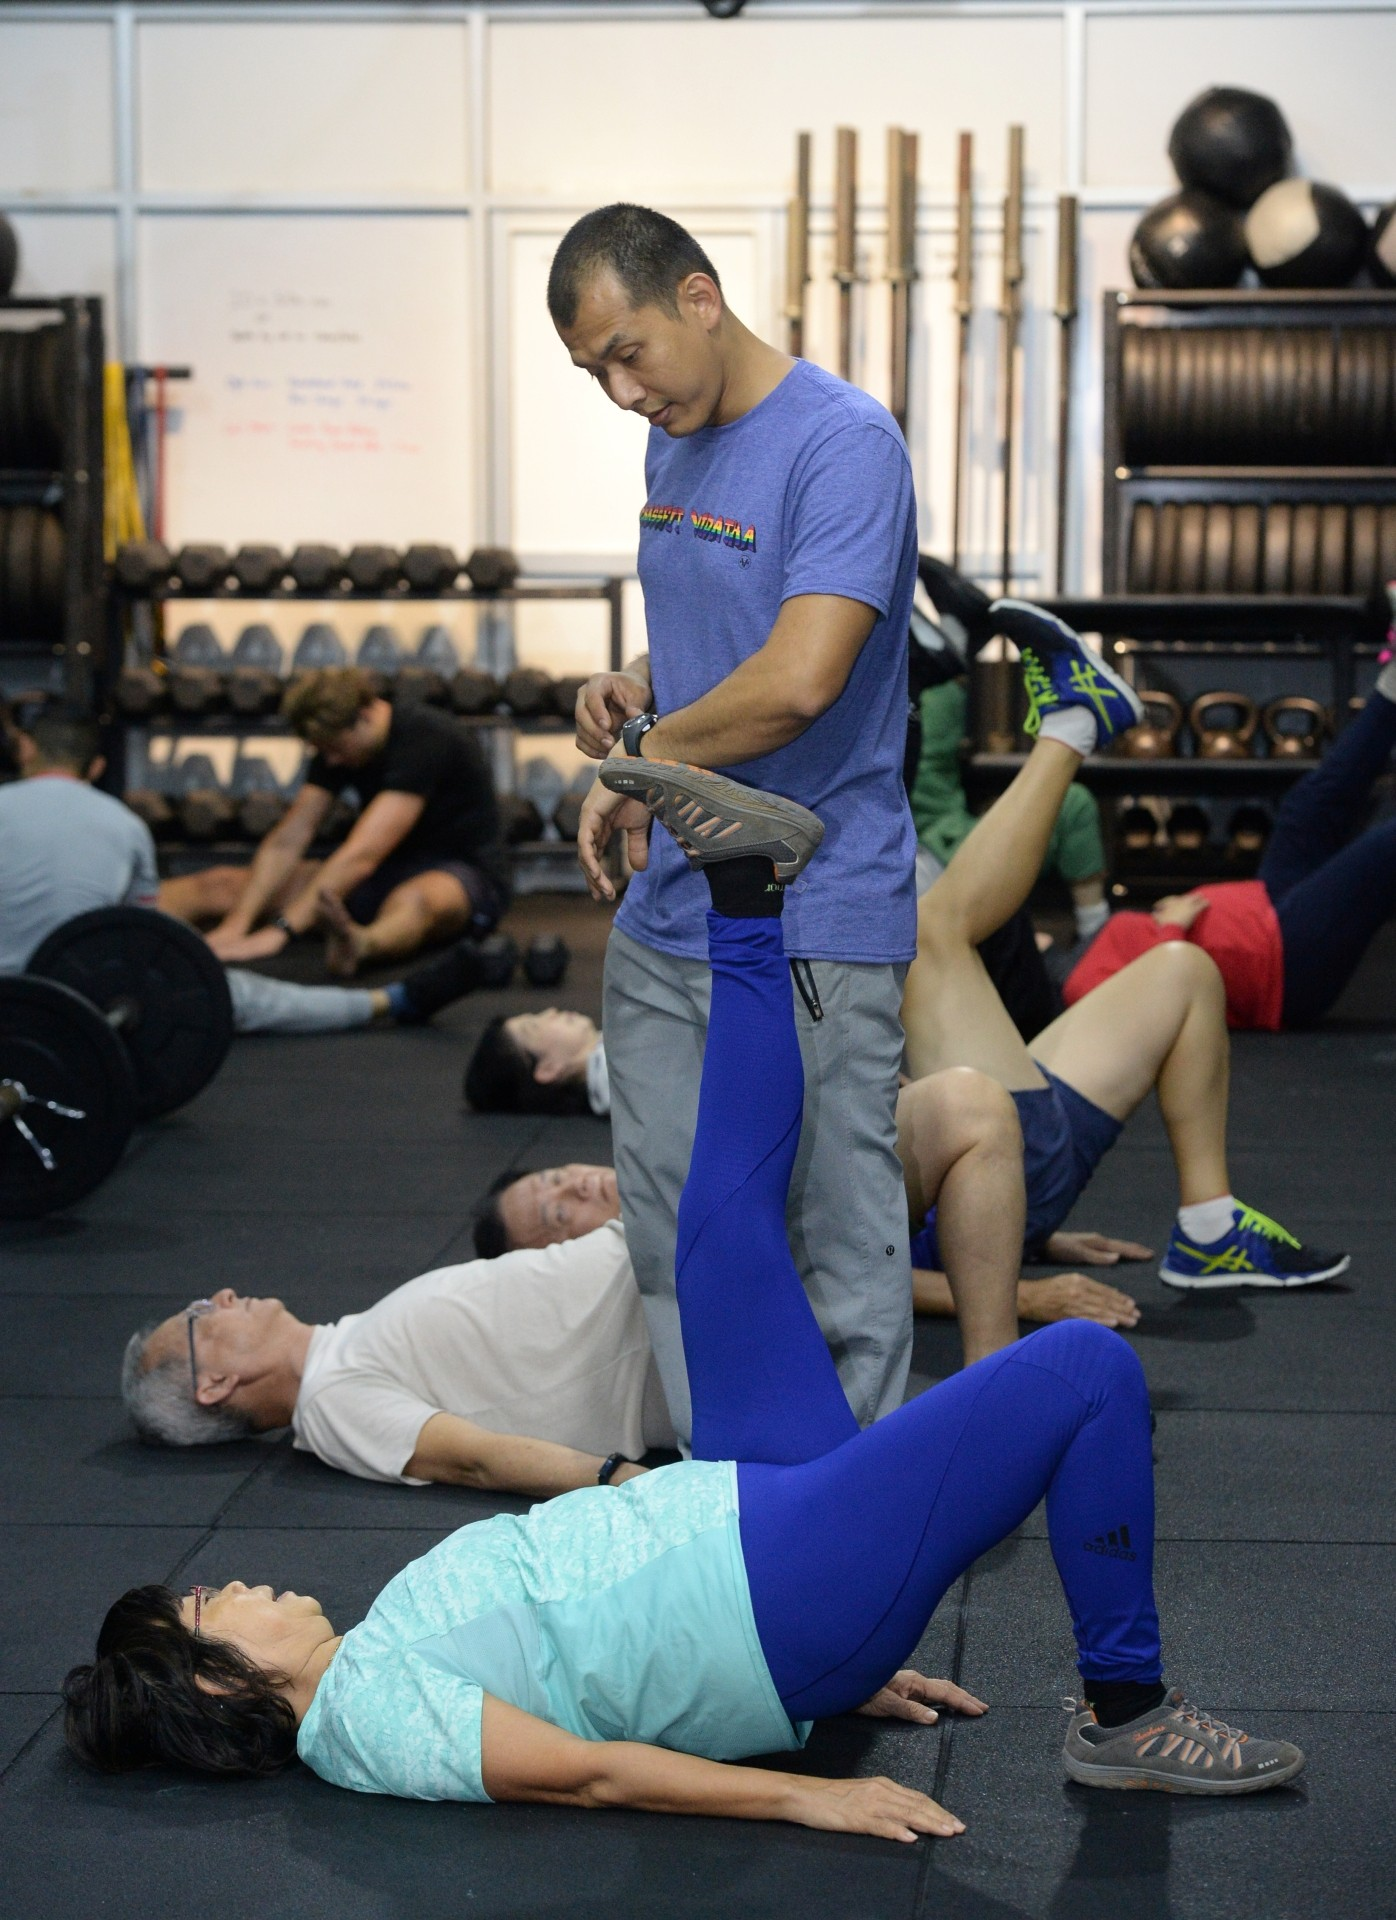 Crossfit isn't just for the young and fit but rather, it's focus on functional movements makes it ideal for seniors.